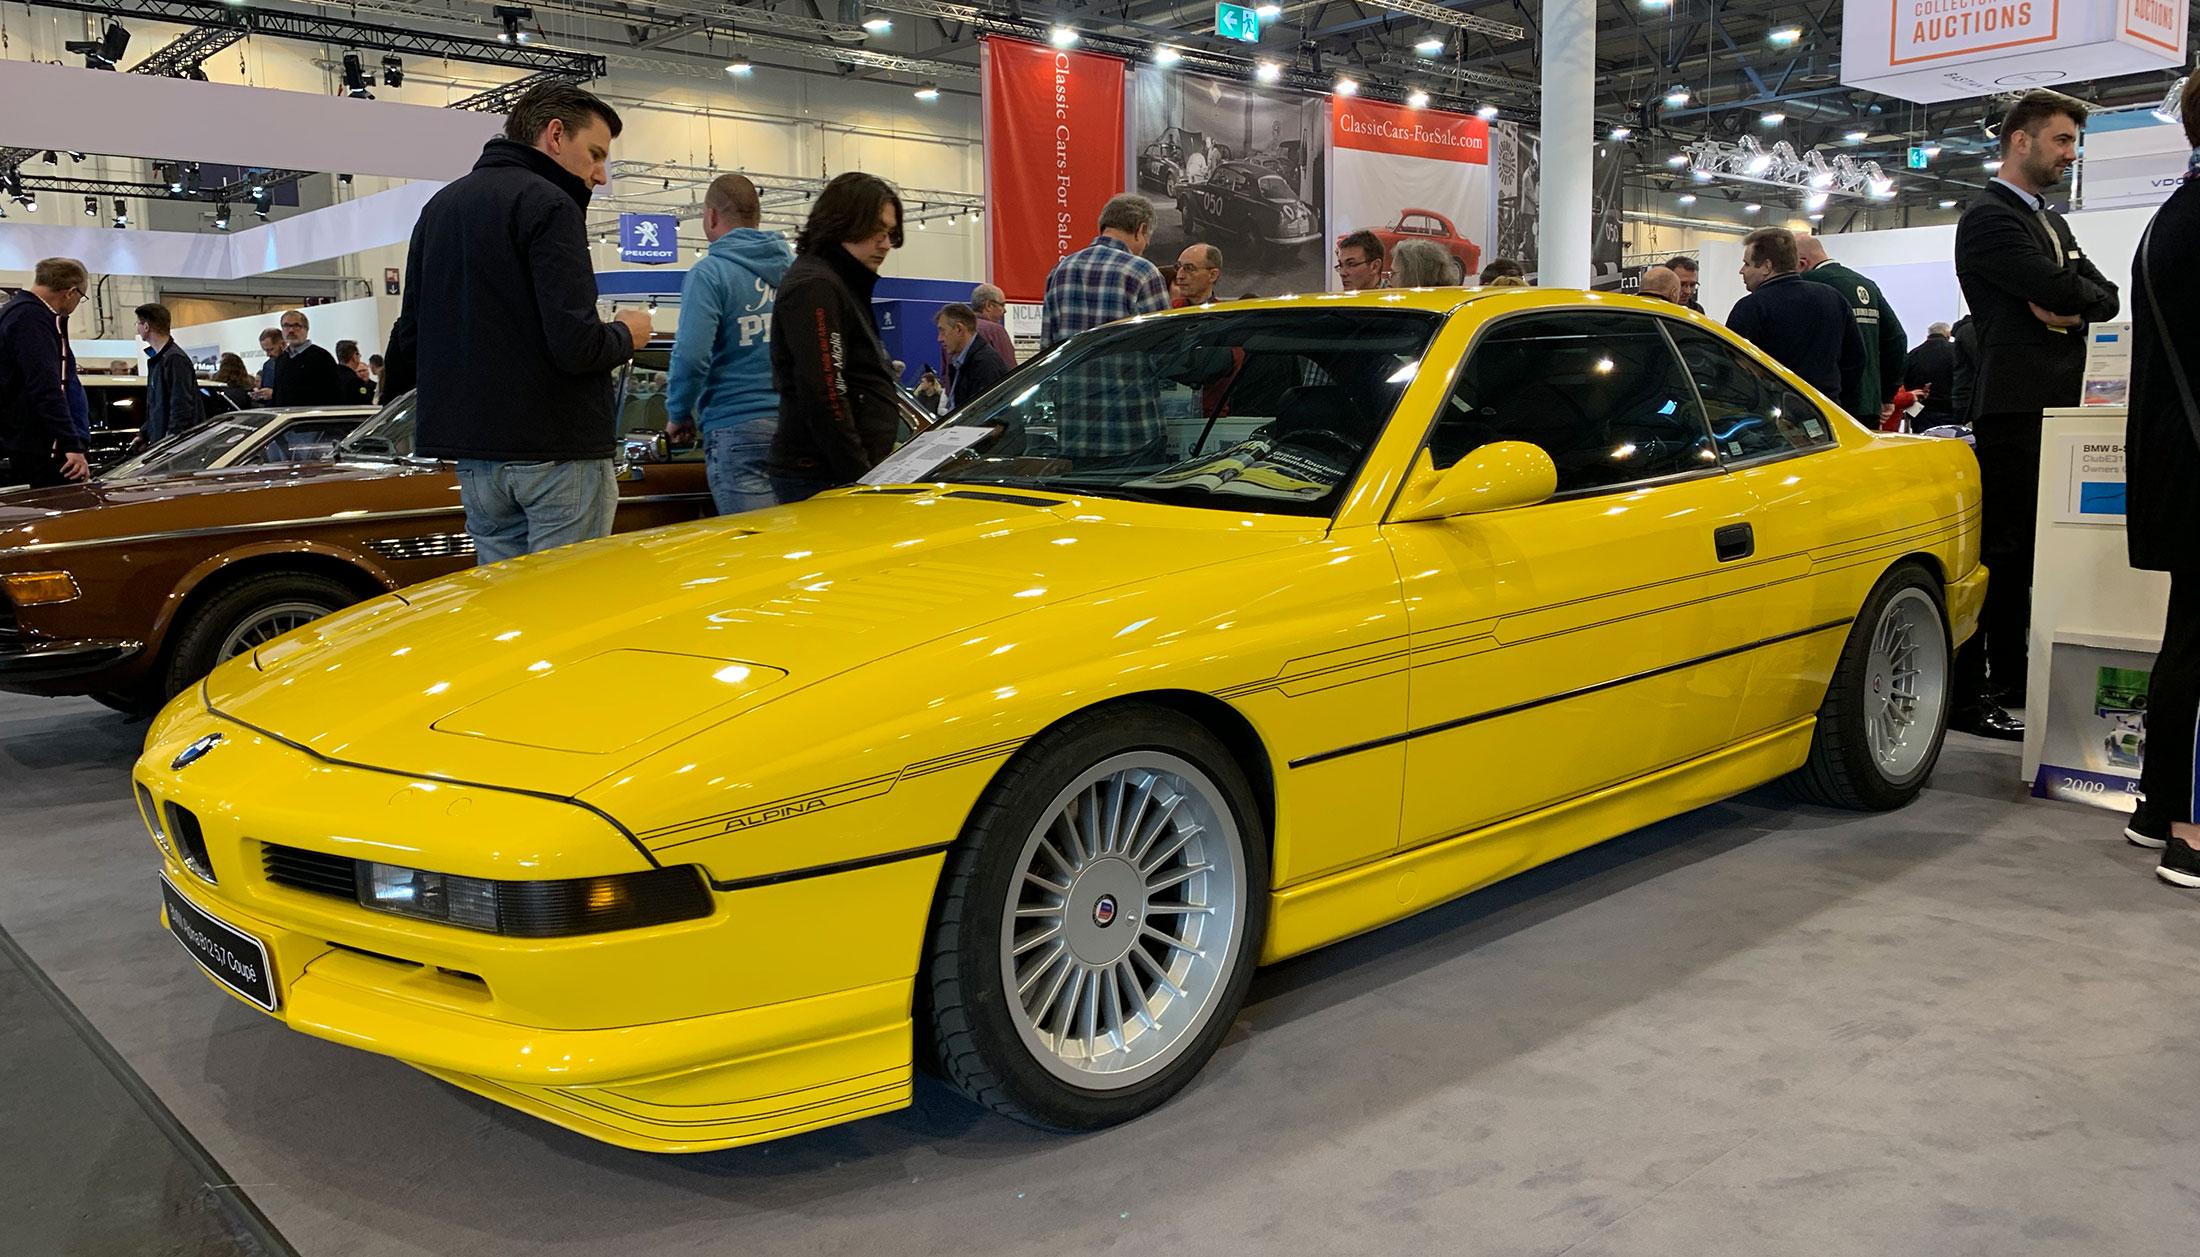 Another clean example of an Alpina B12 / based off the 850csi. Never see these in yellow. Well, never see these either LOL.